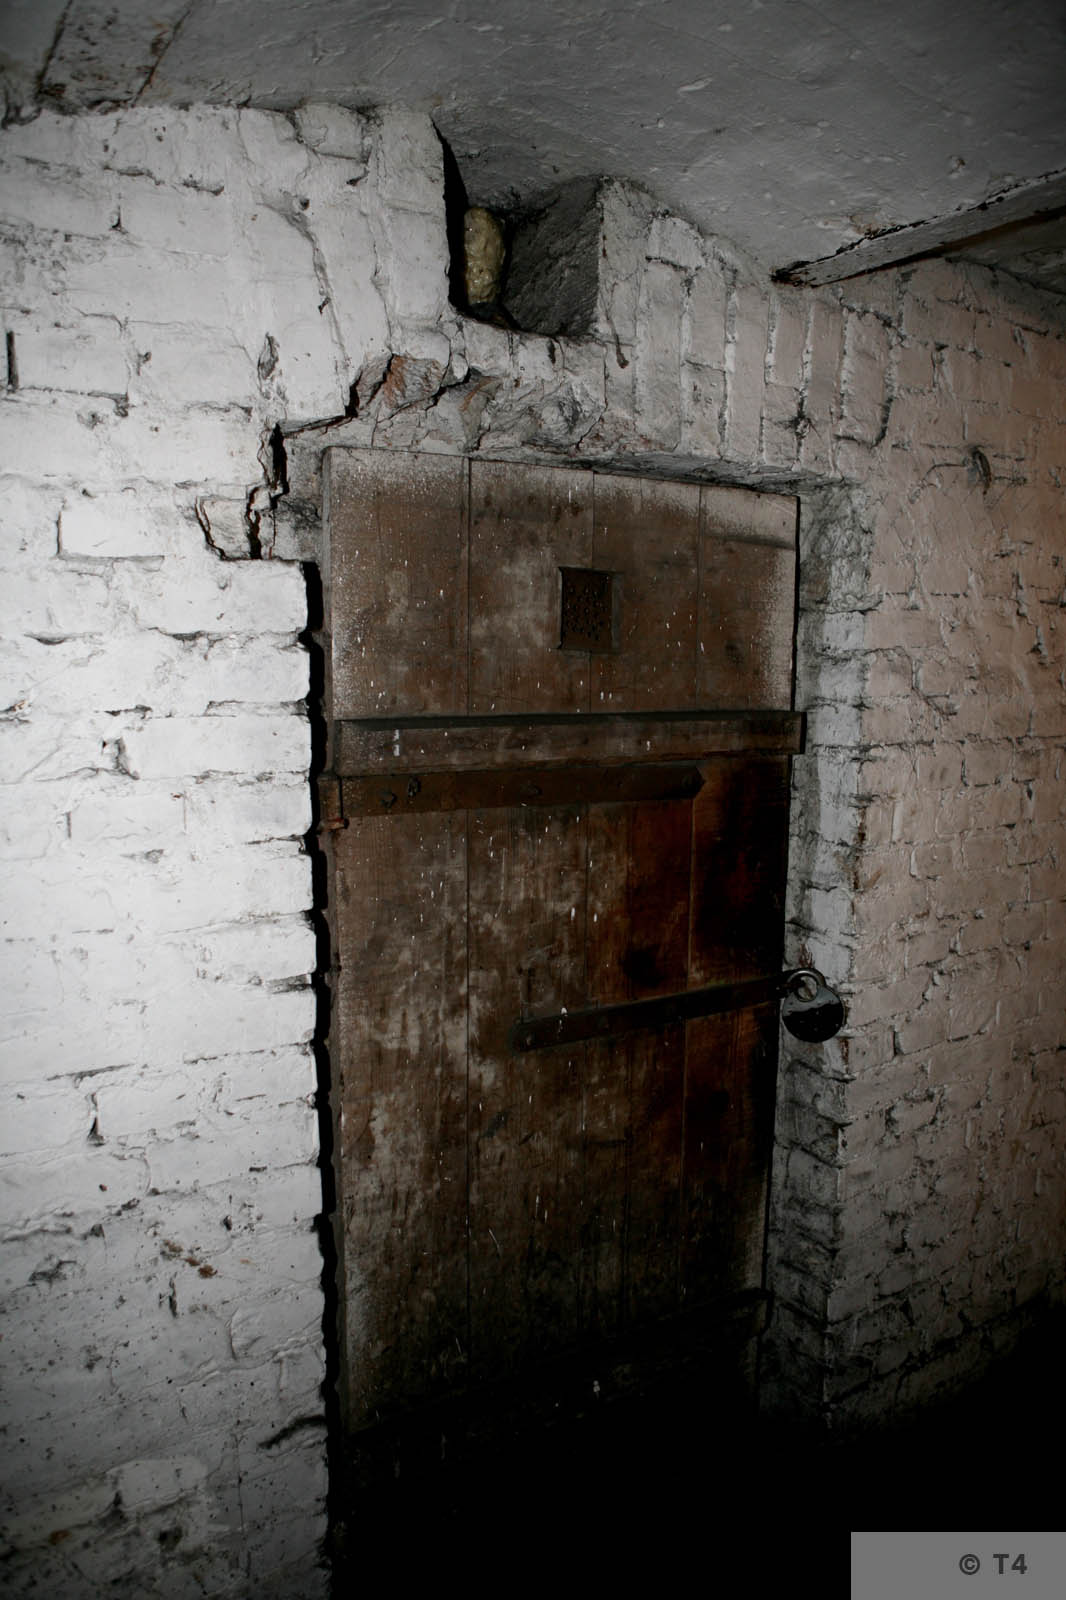 Former cells in the basement of the amdinistration building and prisoner accomodation. 2008 T4 4558